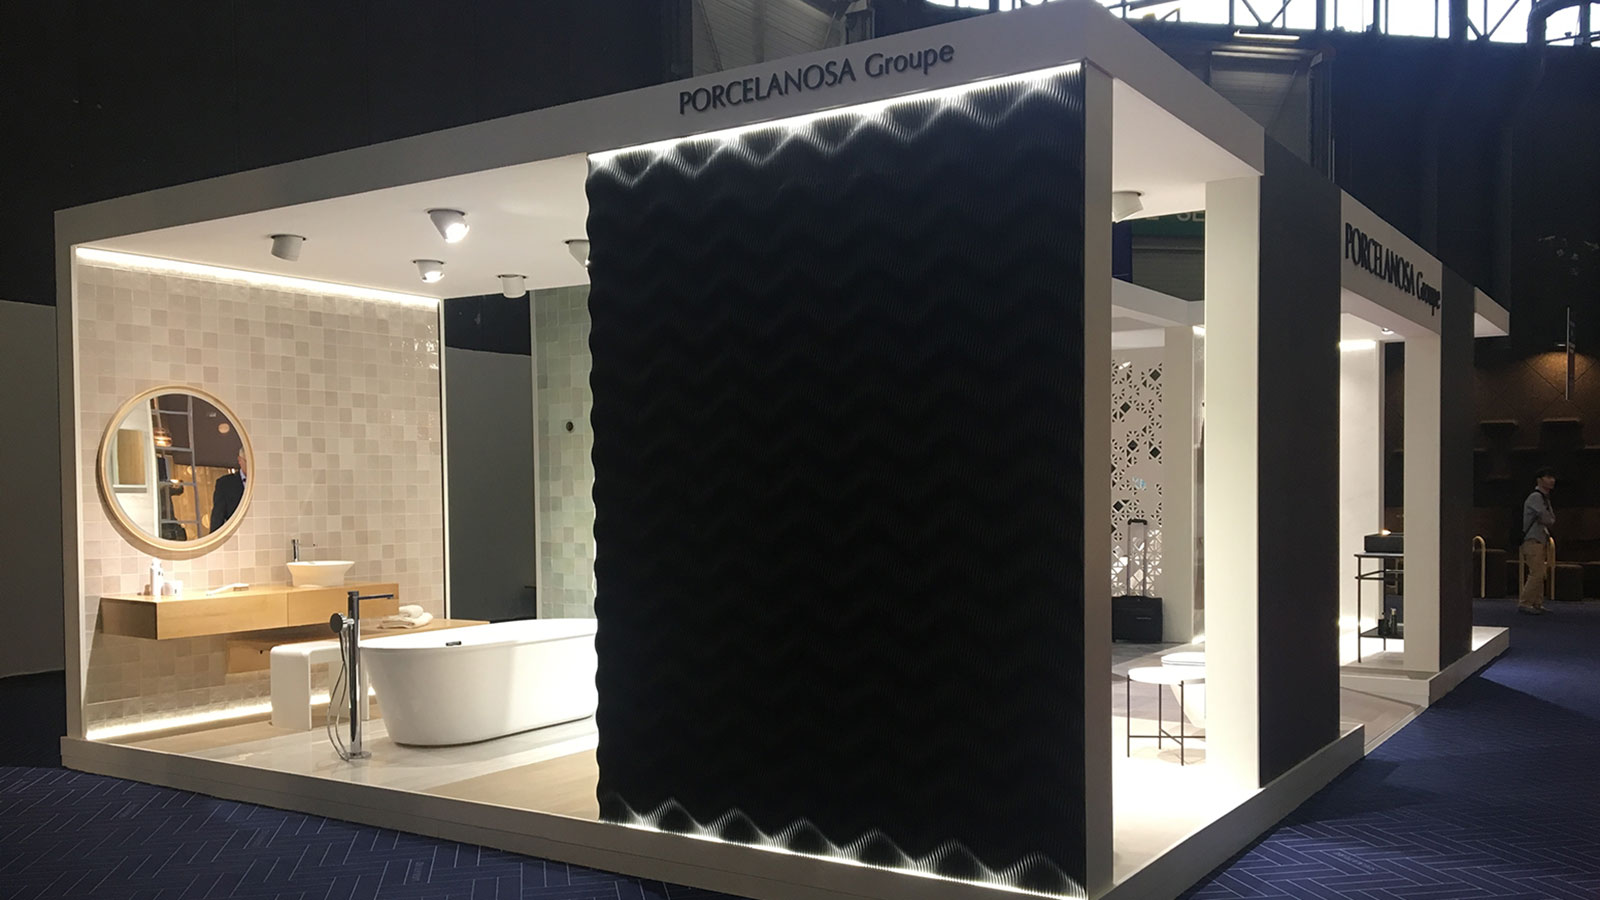 The PORCELANOSA Grupo presents its latest designs at the Maison & Objet y Paris Design Week